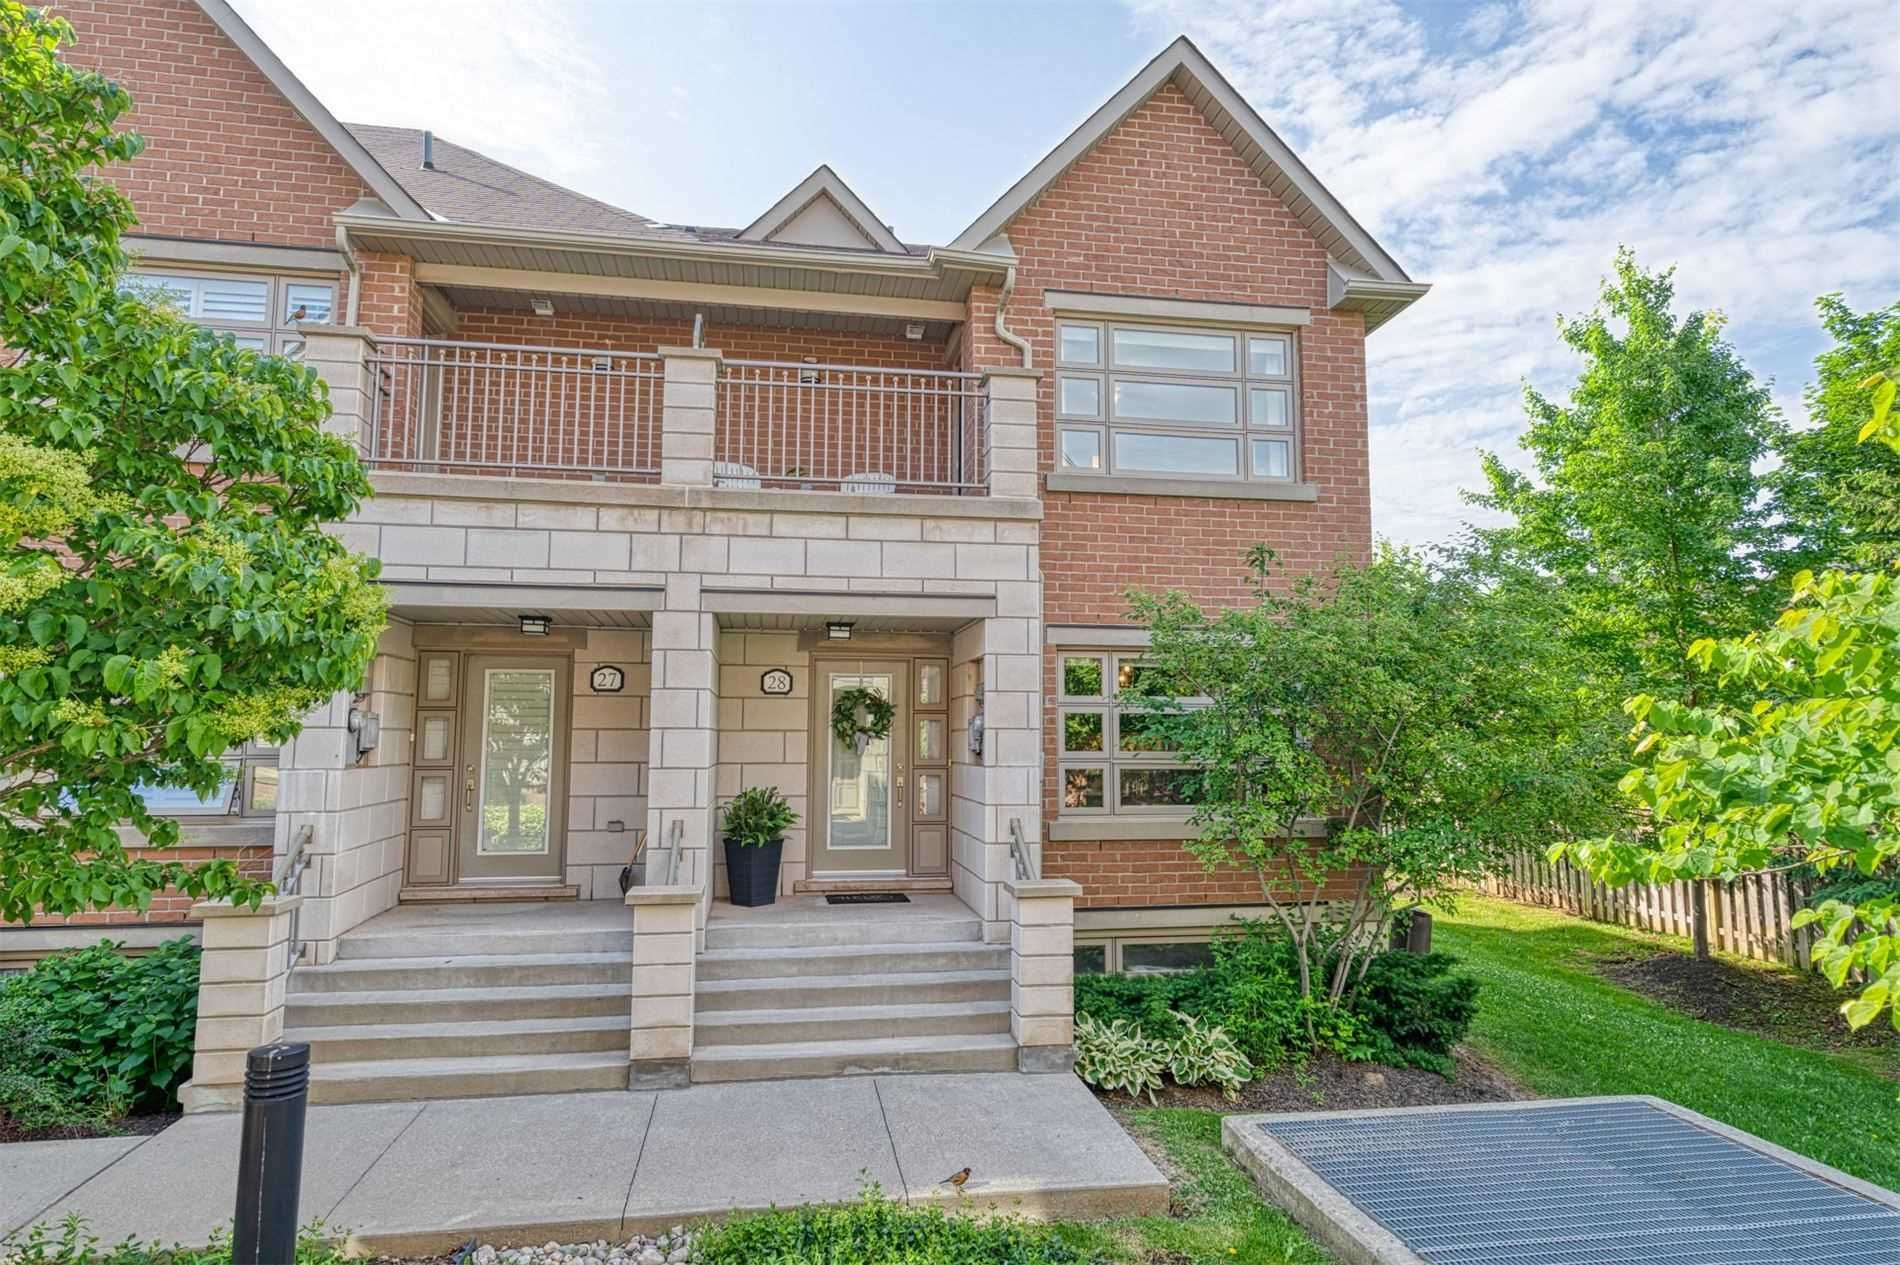 2460 Prince Michael Dr, unit #28 for sale in Toronto - image #1